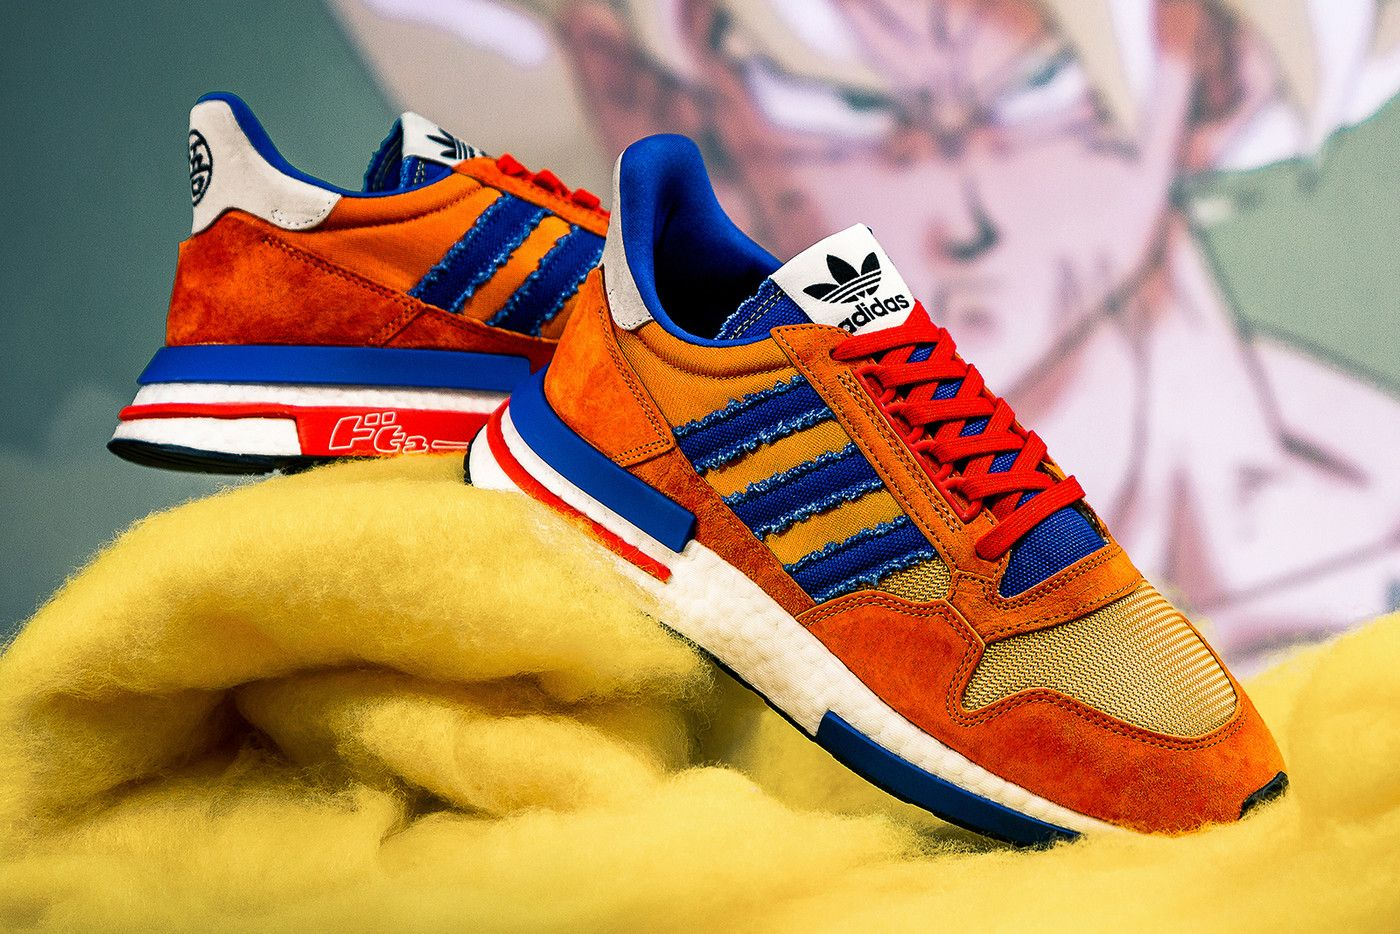 uk availability 8de93 40aa7 adidas originals dragon ball z closer look zx 500 rm goku prophere cell  yung-1 frieza Deerupt